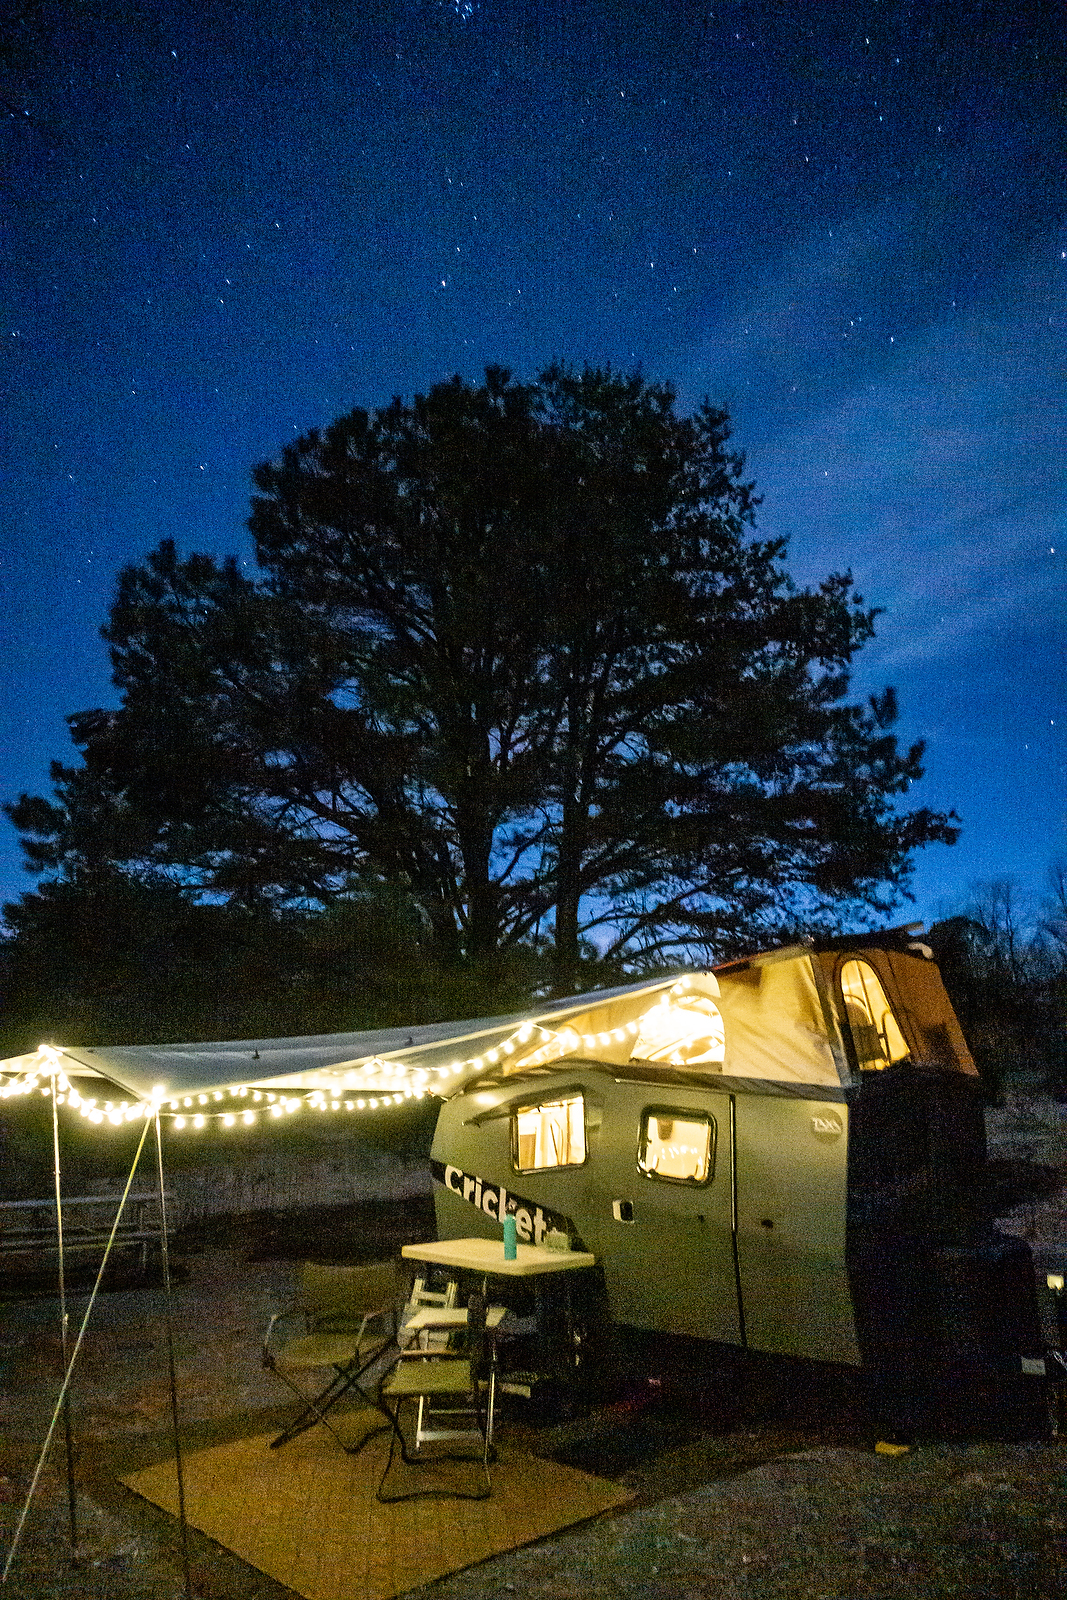 A nighttime view of the camper and stars.